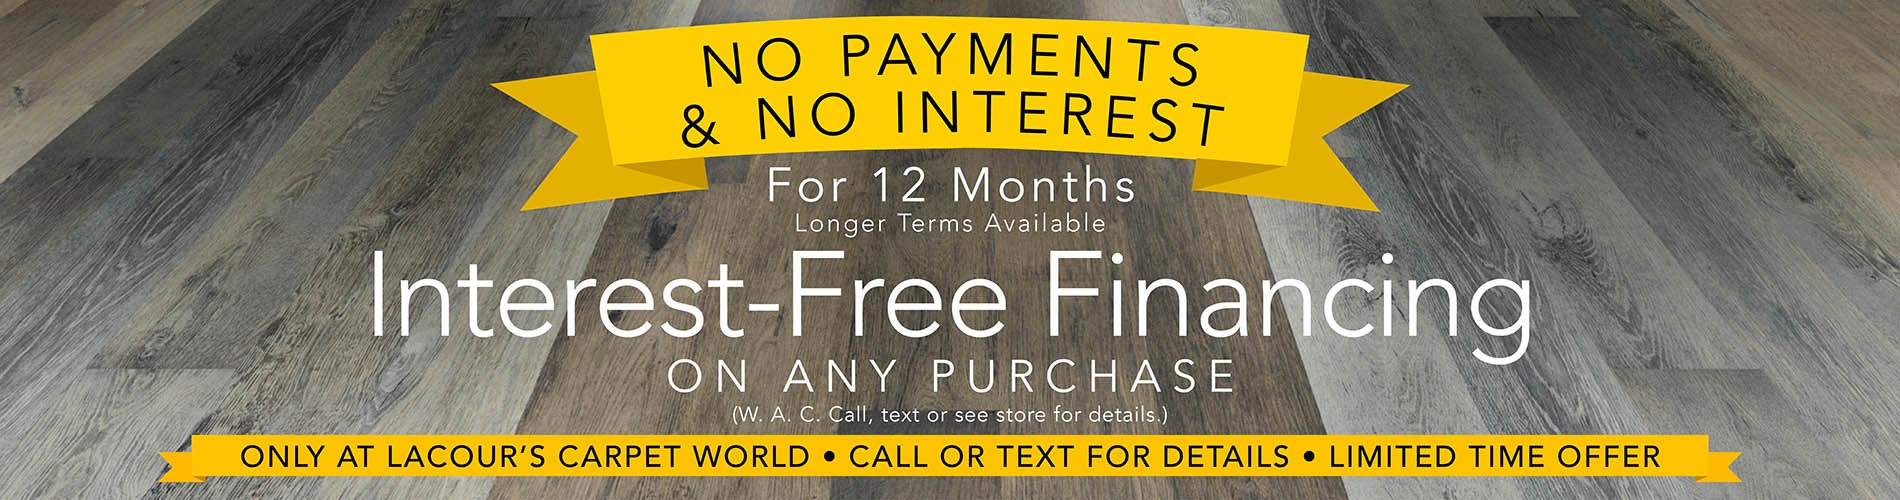 Flexible Financing Available at LaCour's Carpet World in Baton Rouge